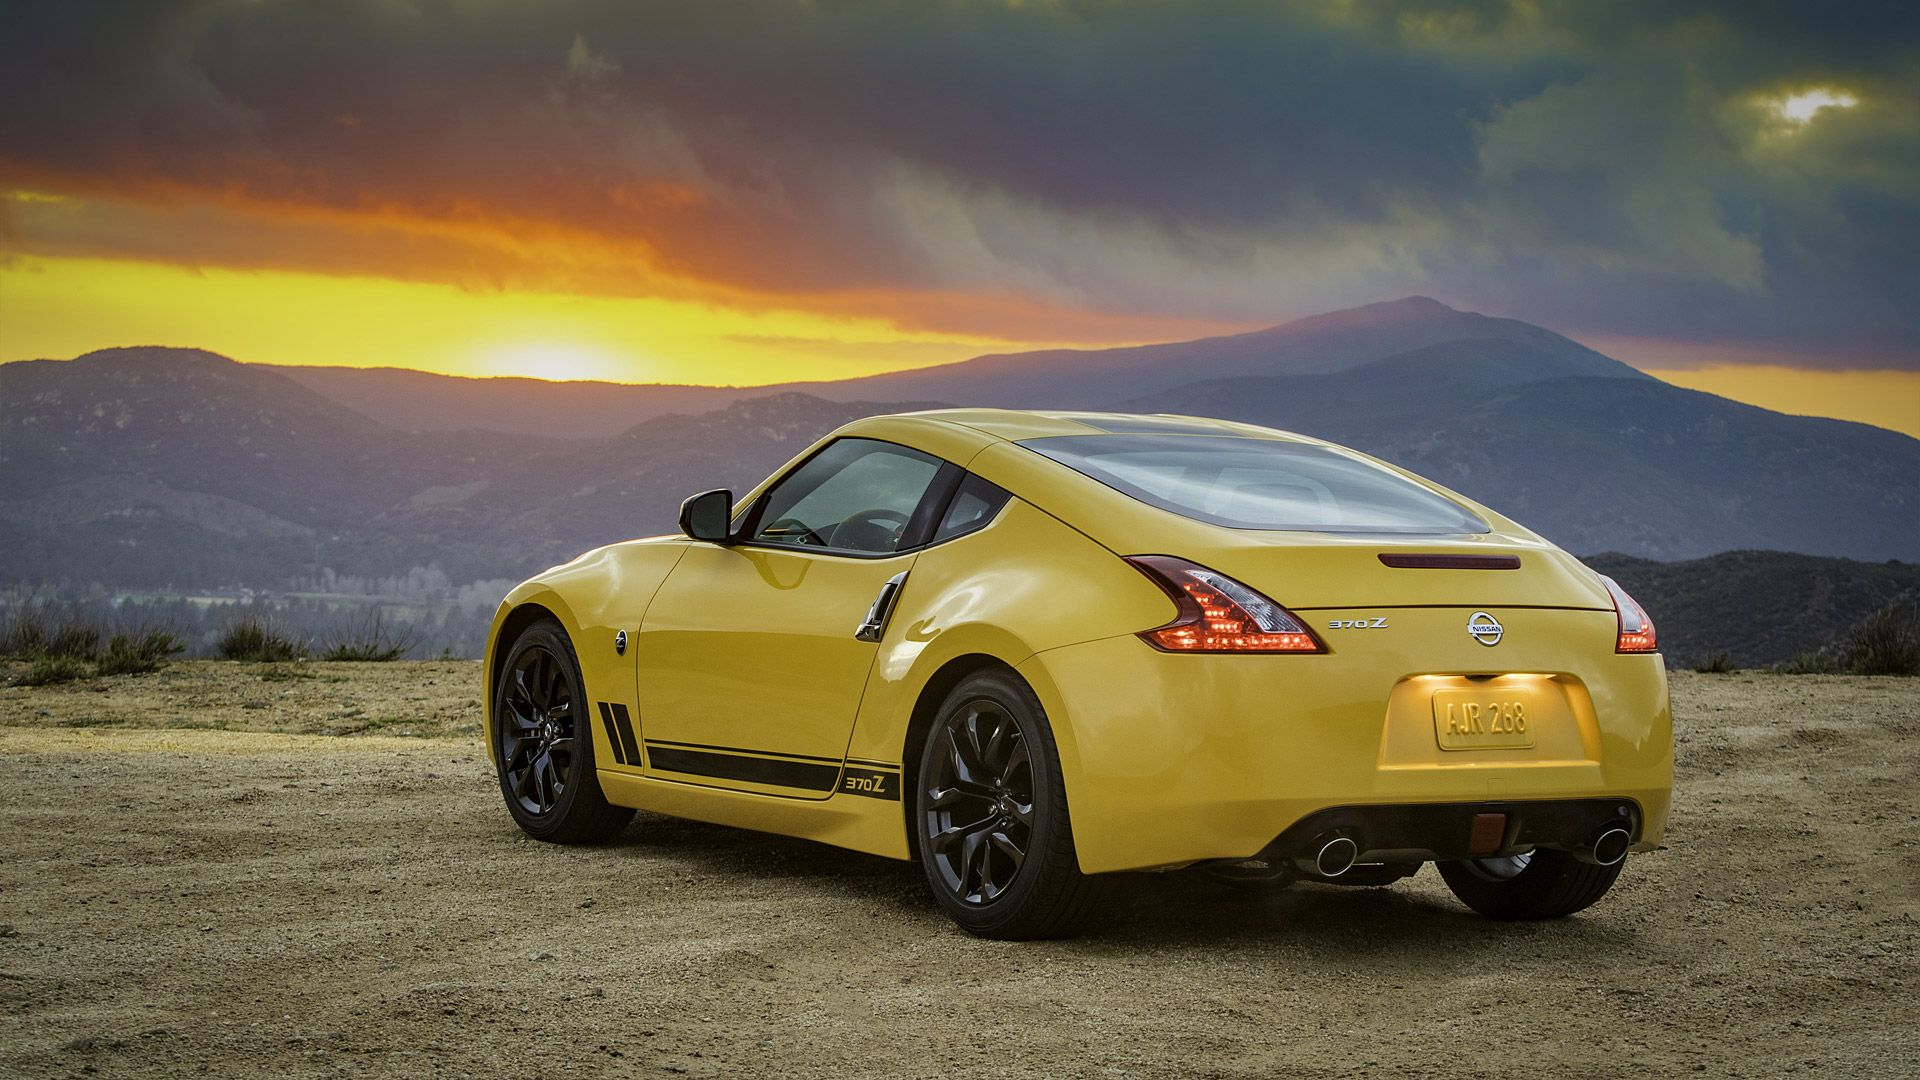 Nissan 370z Wallpapers Top Free Nissan 370z Backgrounds Wallpaperaccess